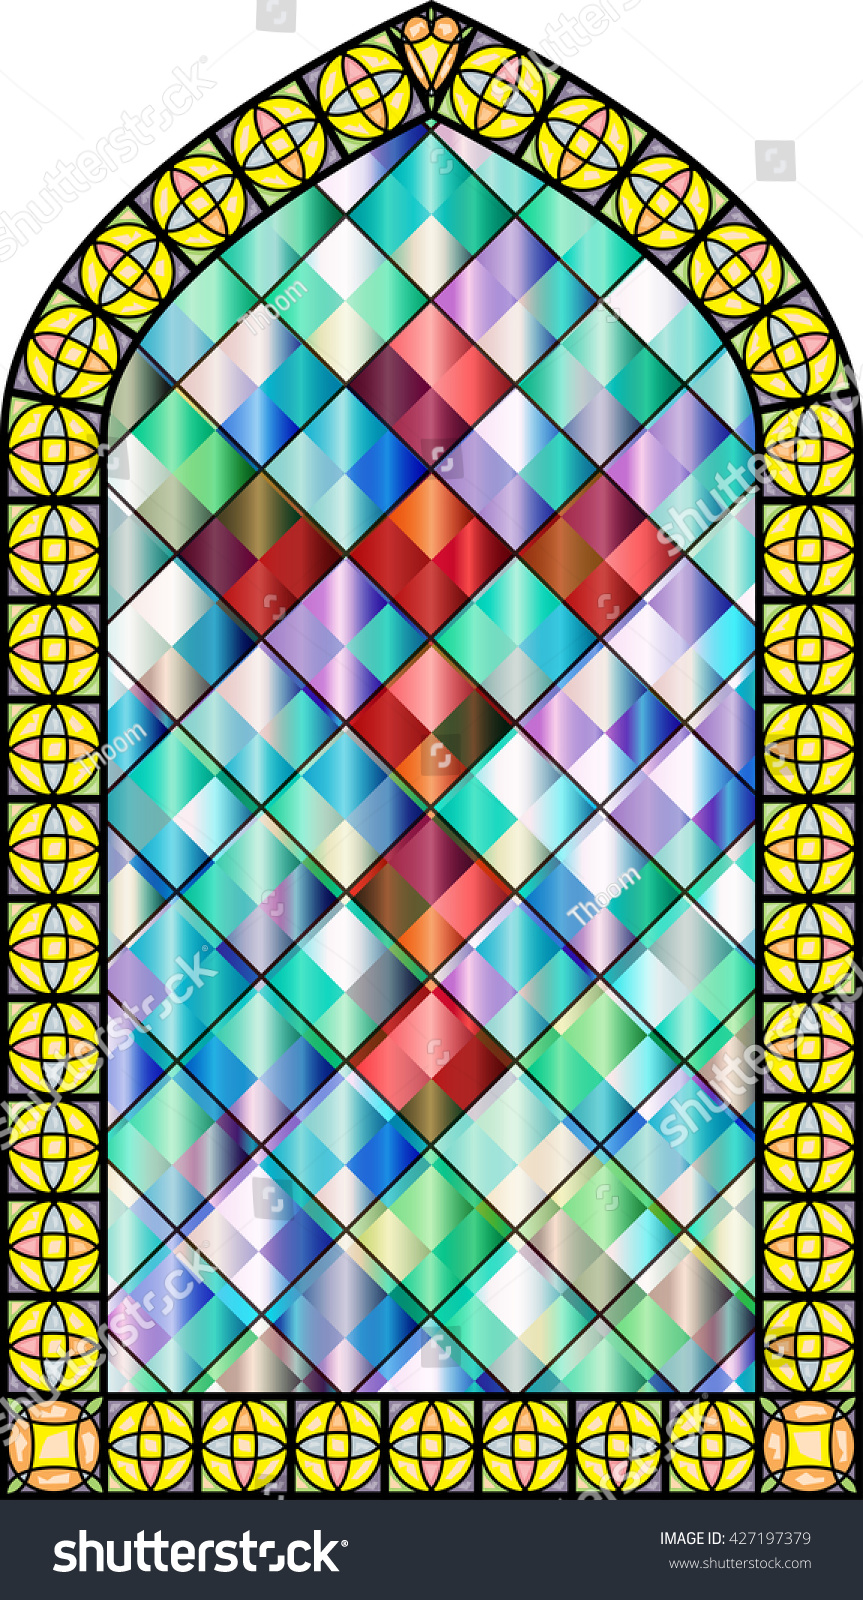 Church Stained Glass Windows With A Cross Vector Color Illustration